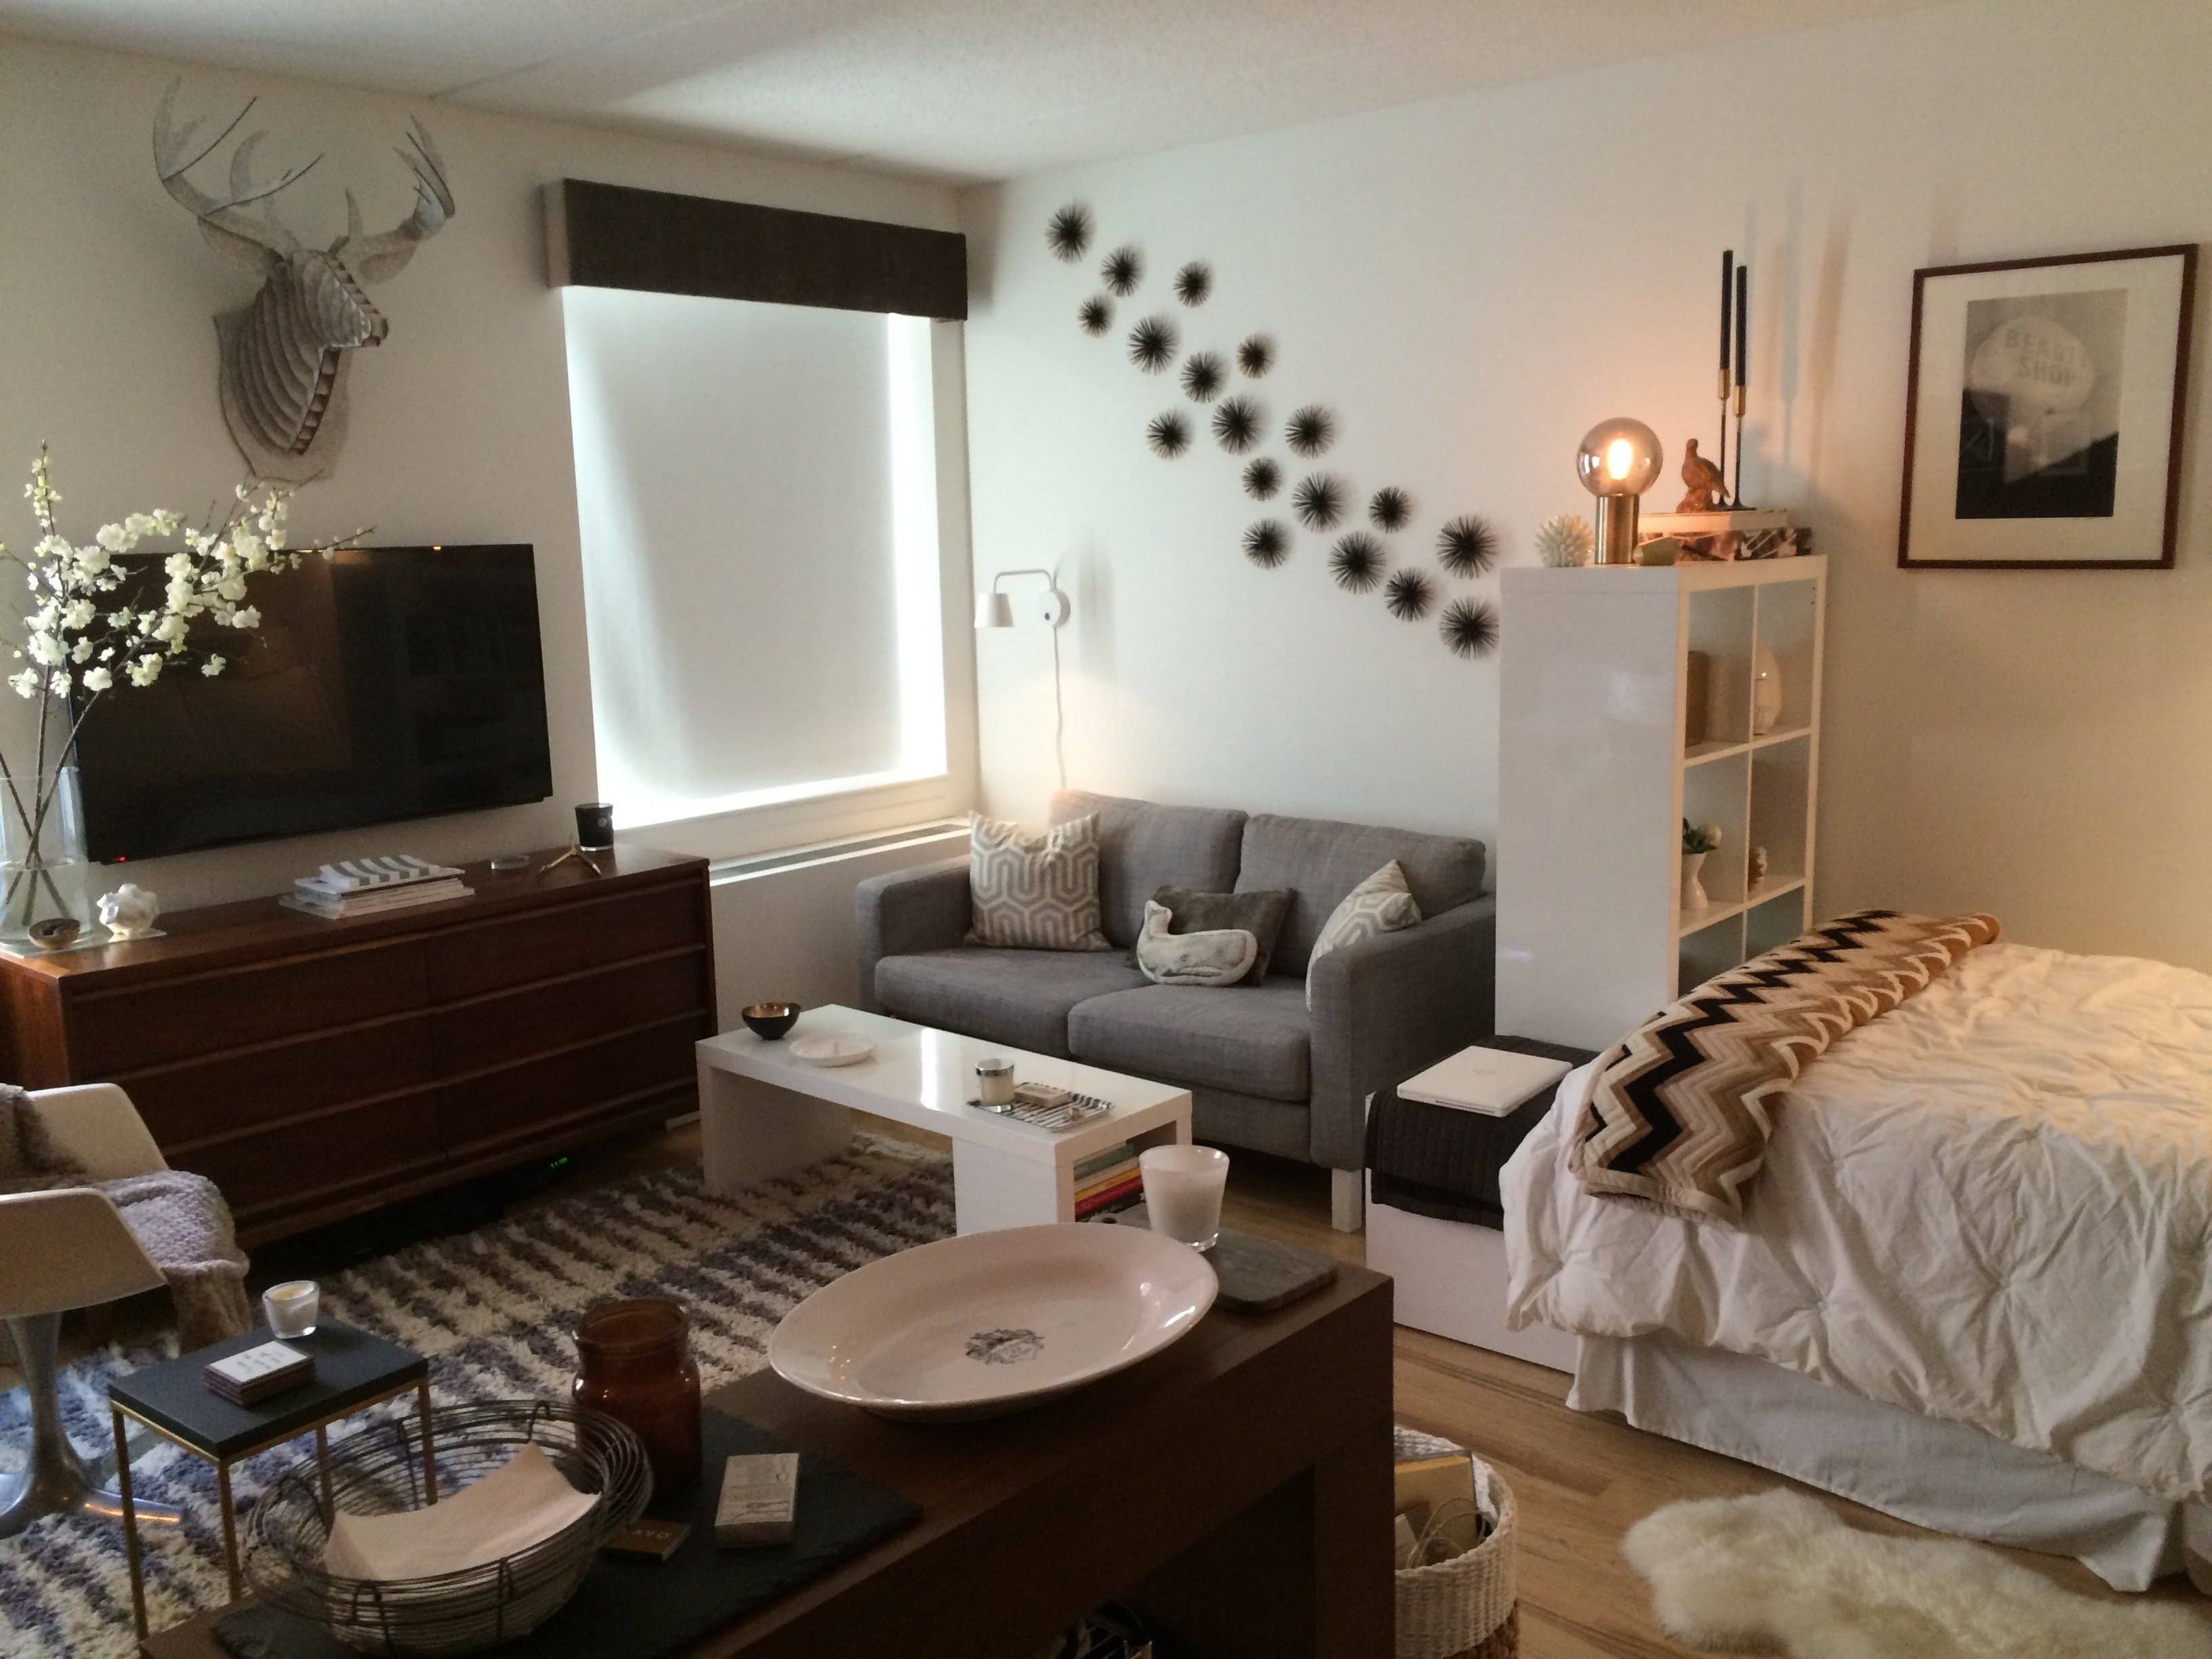 5 Studio Apartment Layouts That Just Plain Work  Studio love  Studio apartment layout Tiny